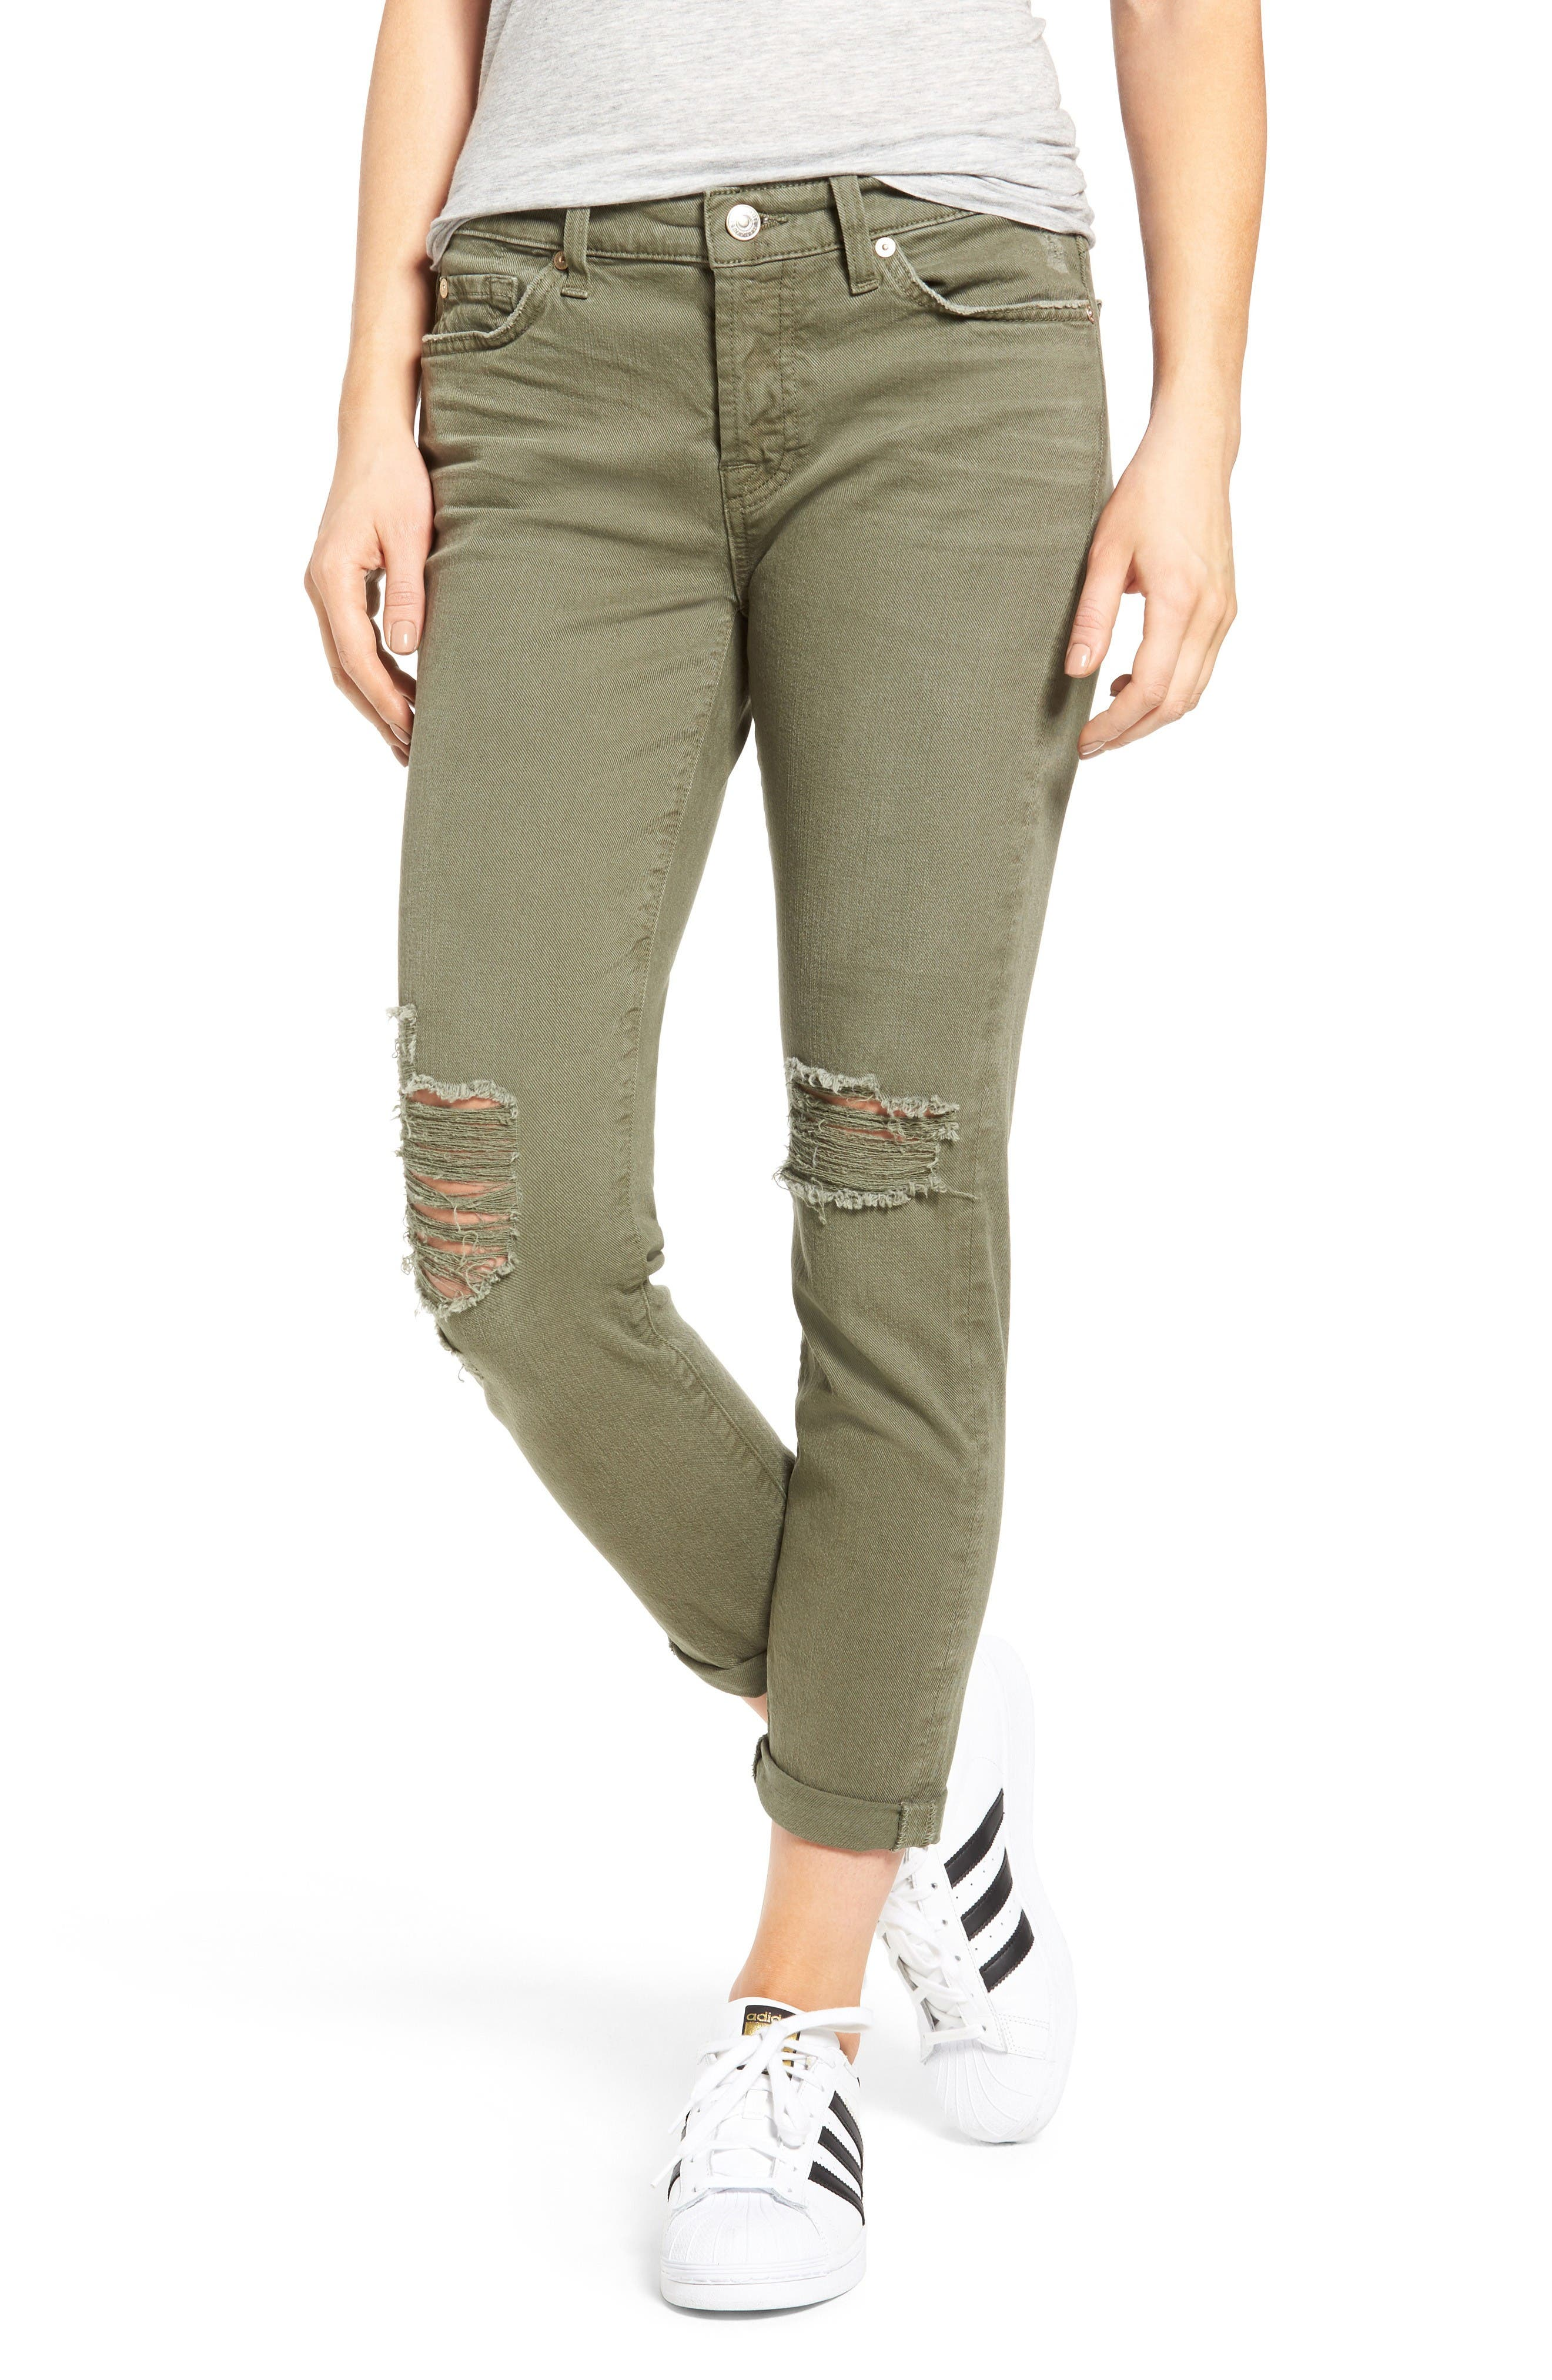 Alternate Image 1 Selected - 7 For All Mankind® Josefina Destroyed Boyfriend Jeans (Sun Bleached Olive)